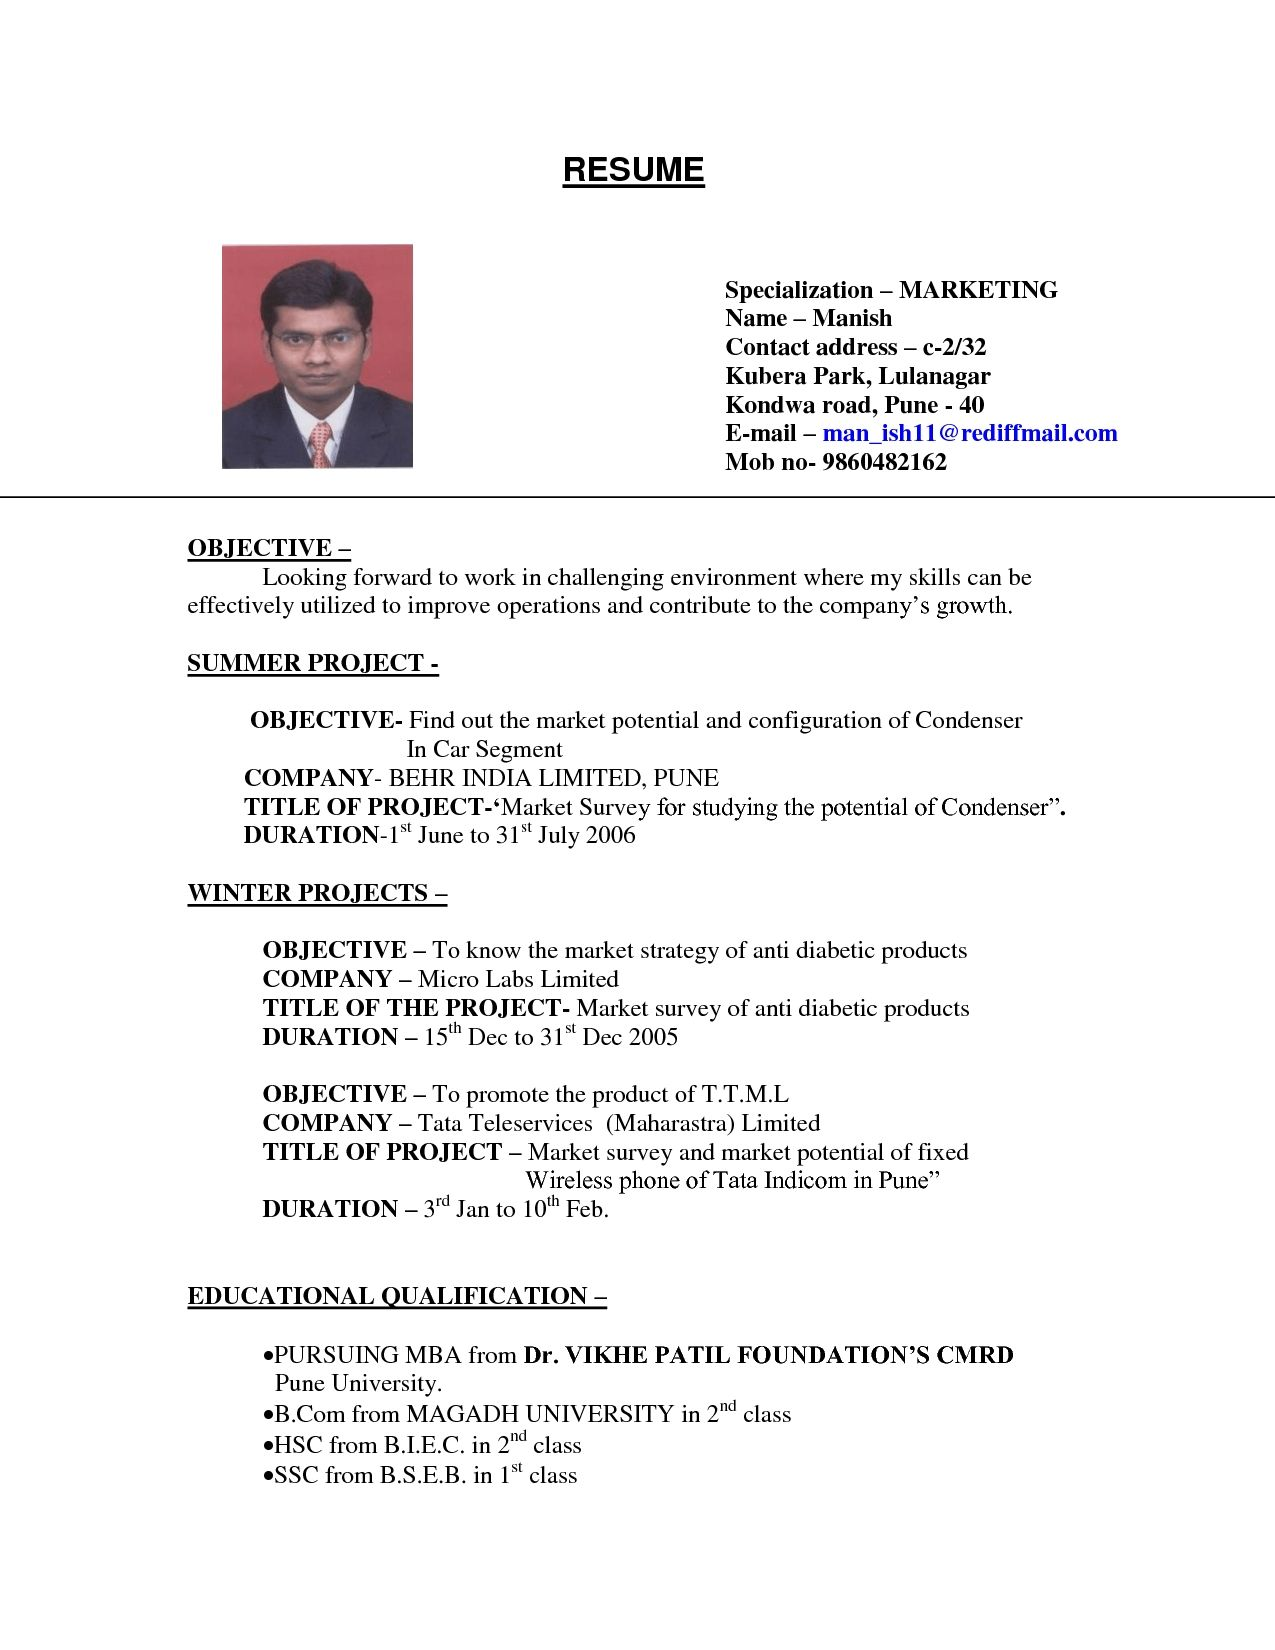 Format For A Resume For A Job Examples Of Resumes Sample Resume For College Student